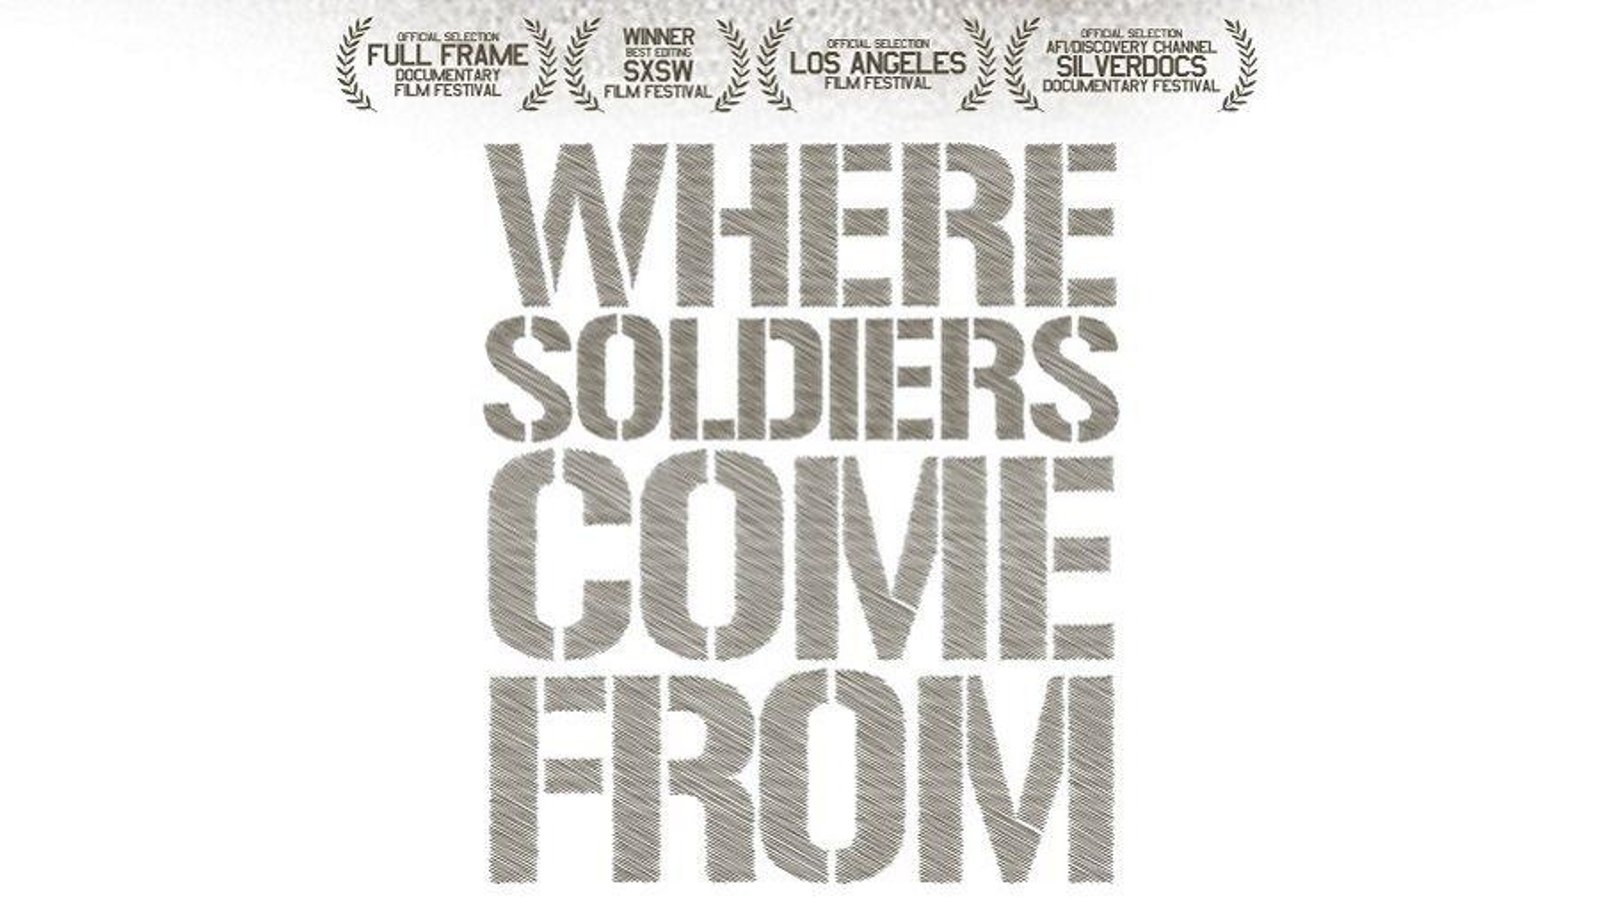 Where Soldiers Come From - An Intimate Look at Young Men in the Military